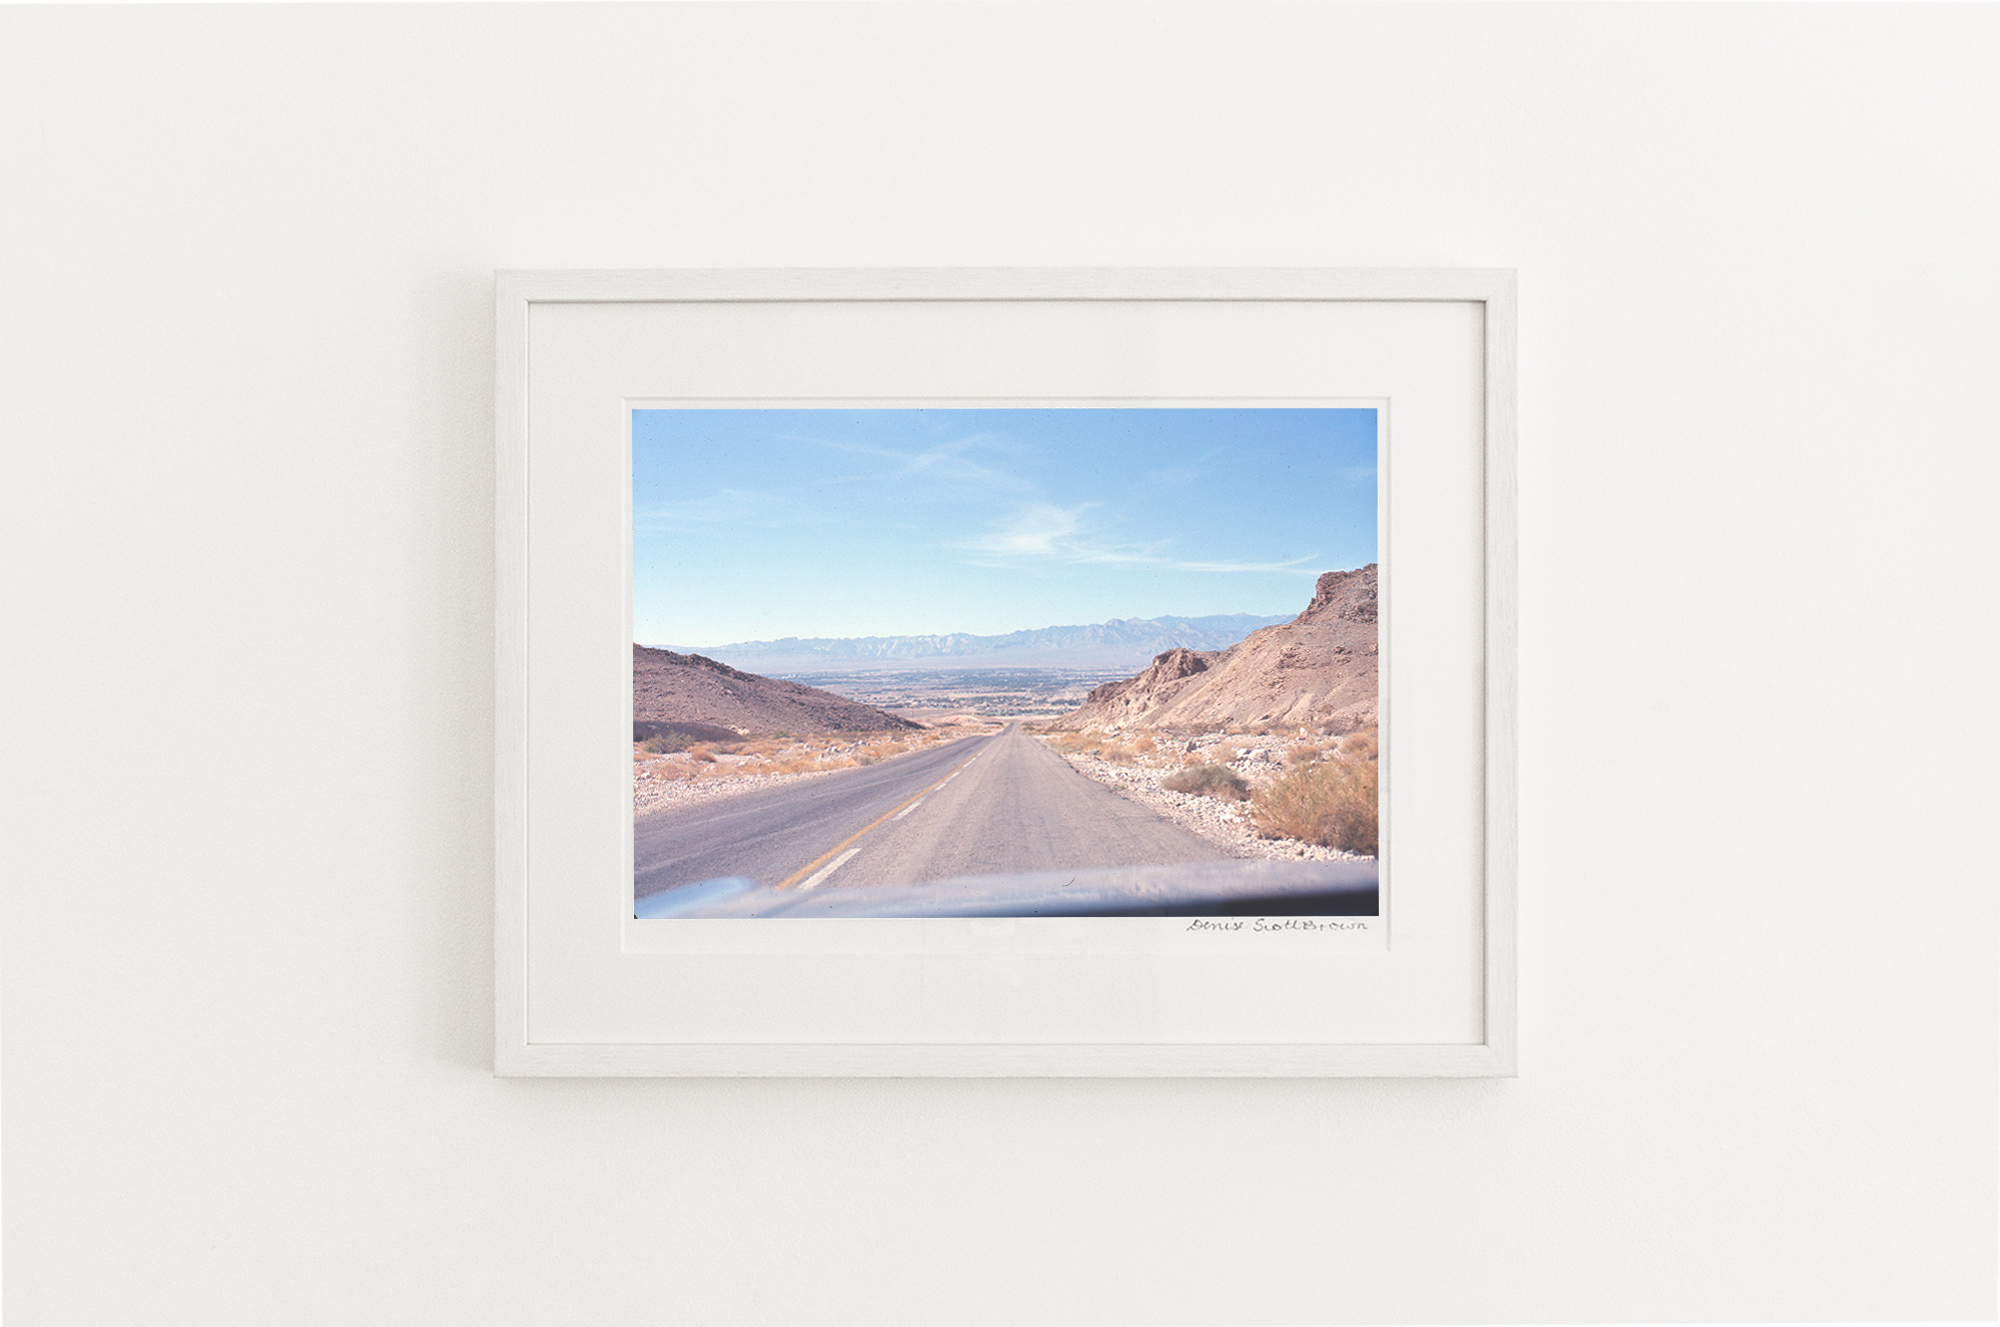 Mojave Desert, California , around 1966. Giclée pigment on Hahnemuhle archival paper, 45.5 x 30.3 cm (framed), Edition of 10